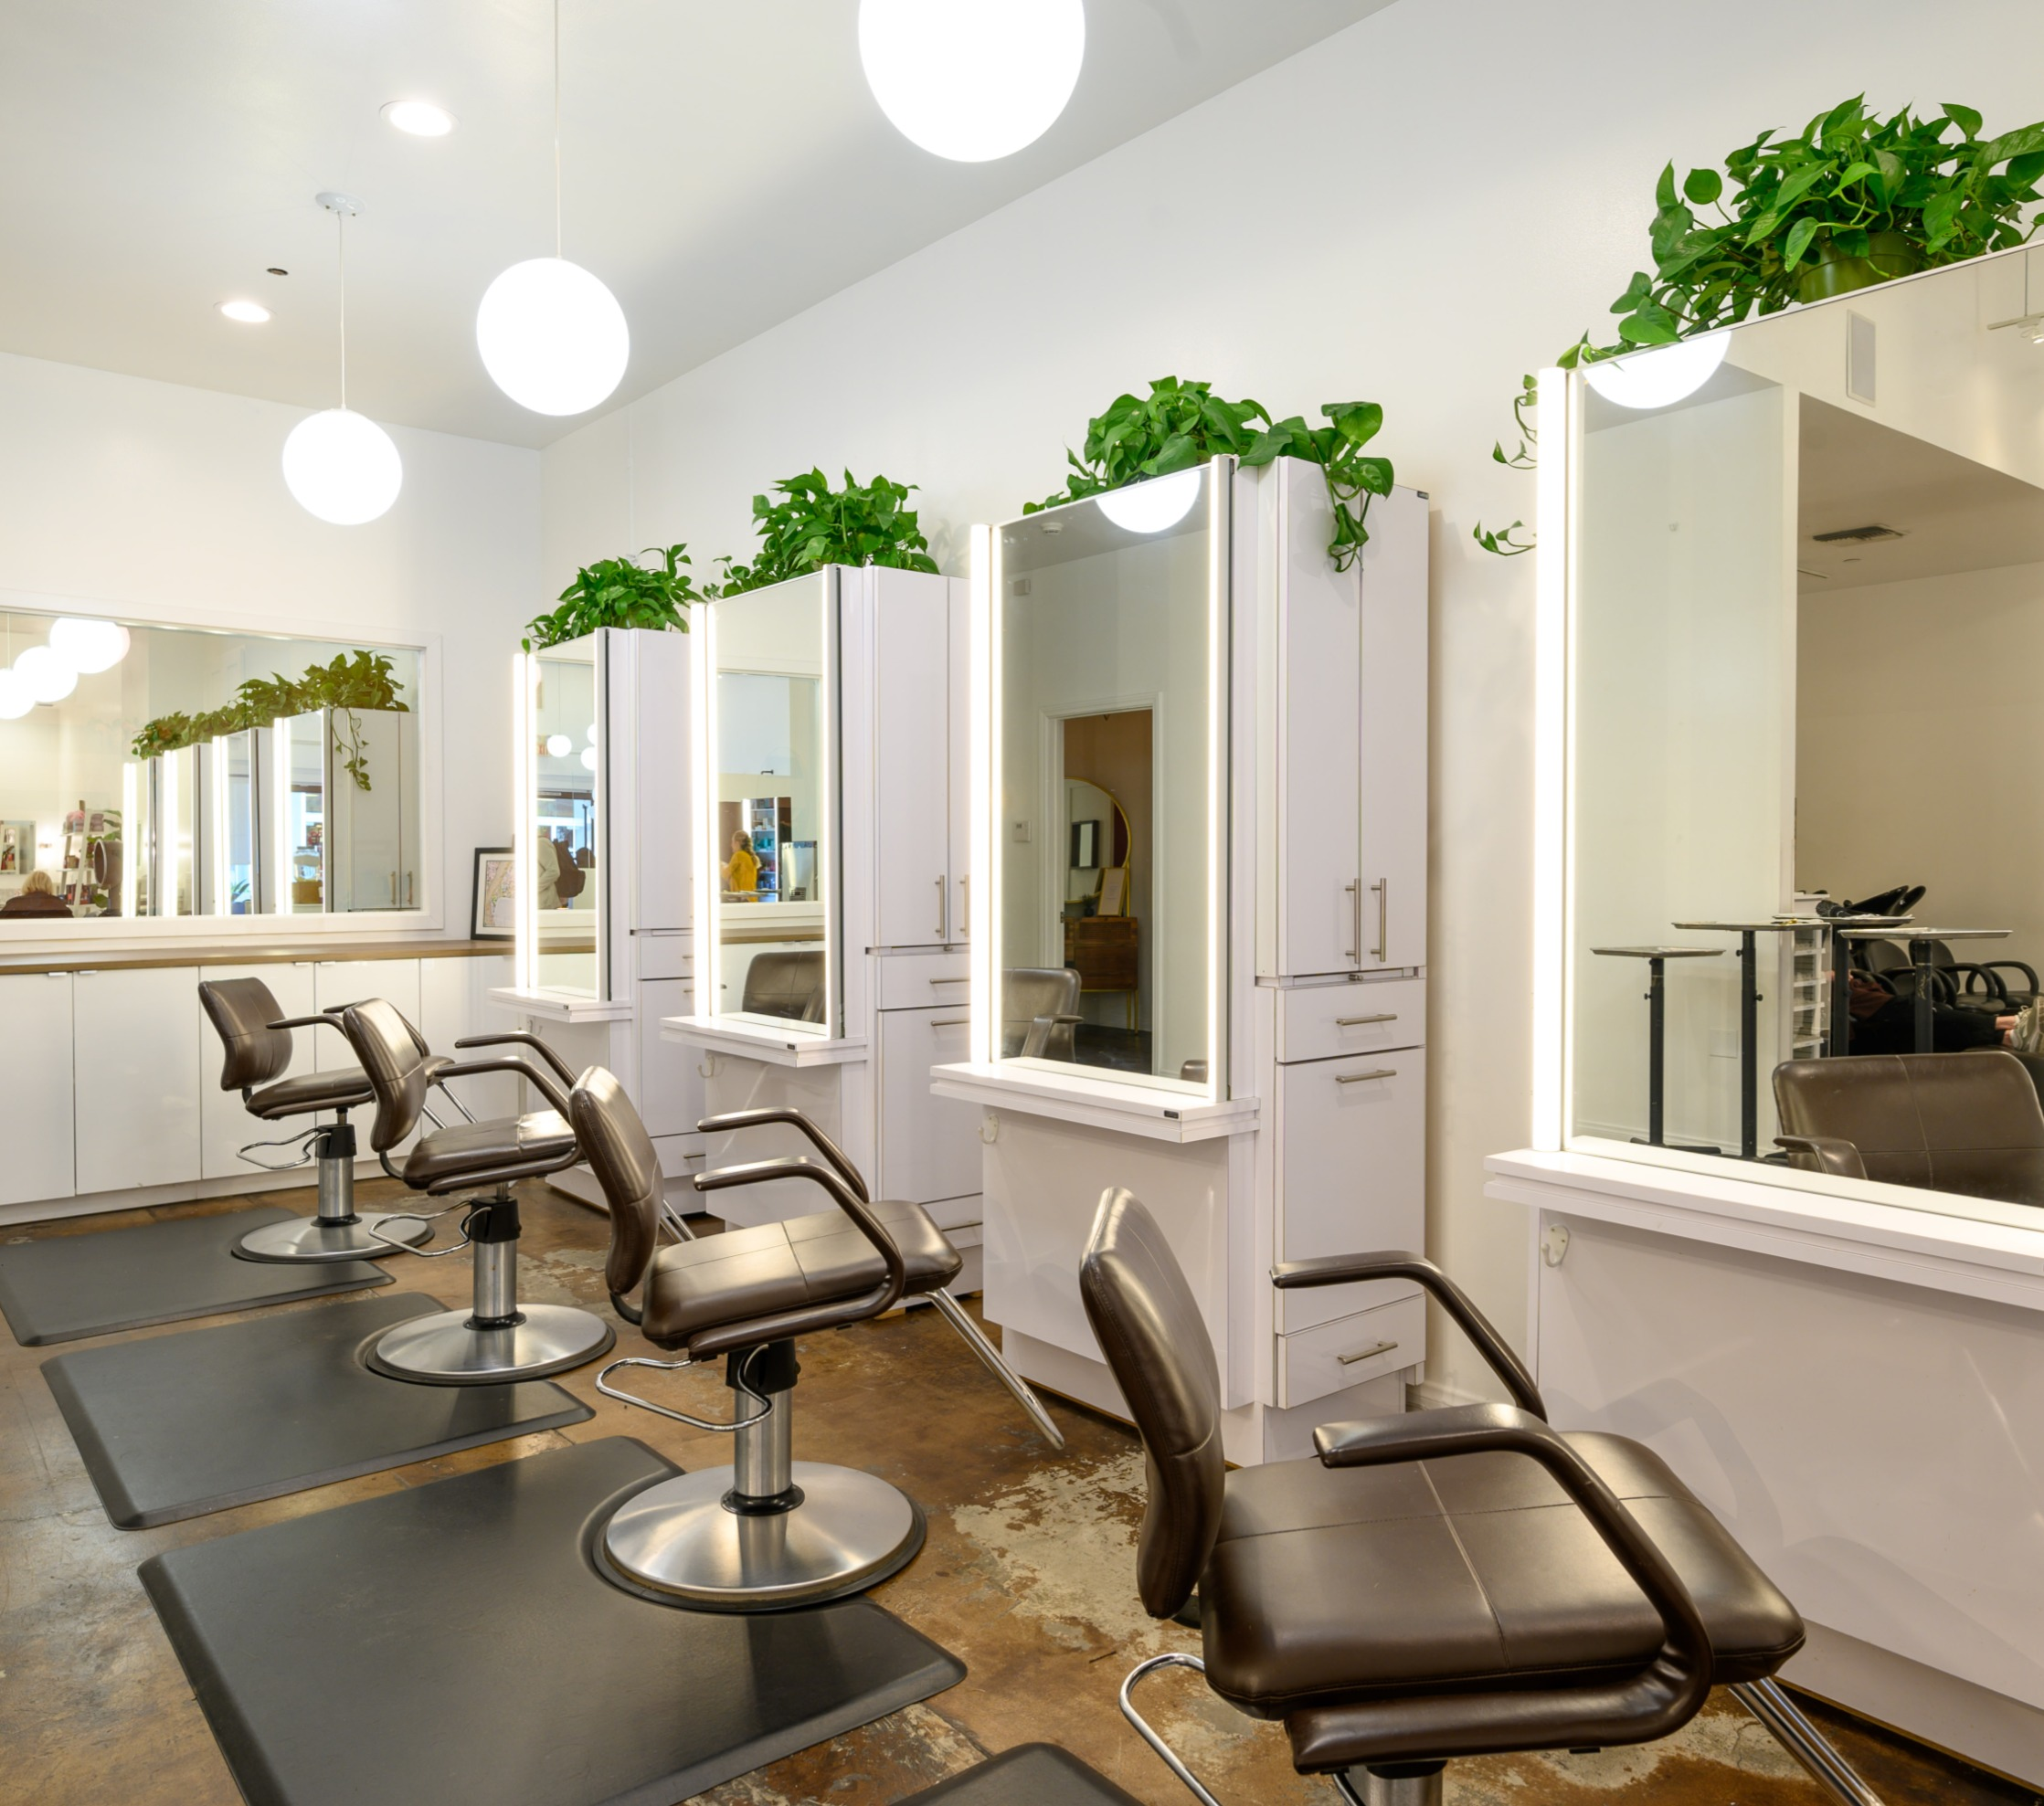 Best blow-dry and blowout bar Pasadena